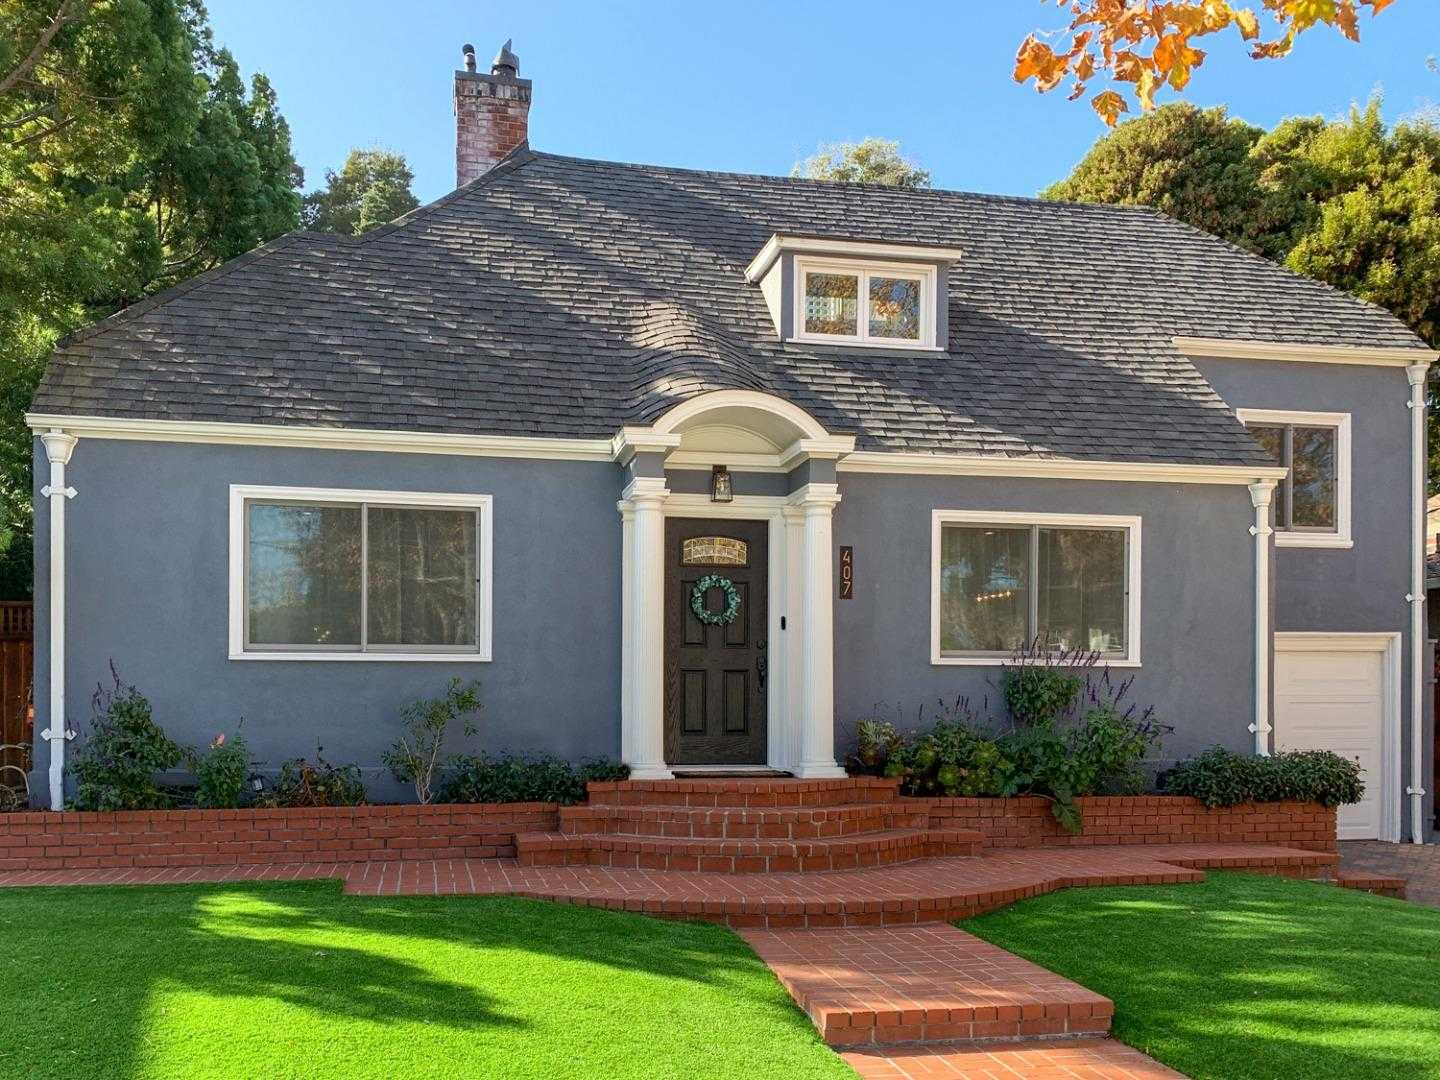 $2,998,000 - 4Br/3Ba -  for Sale in Burlingame